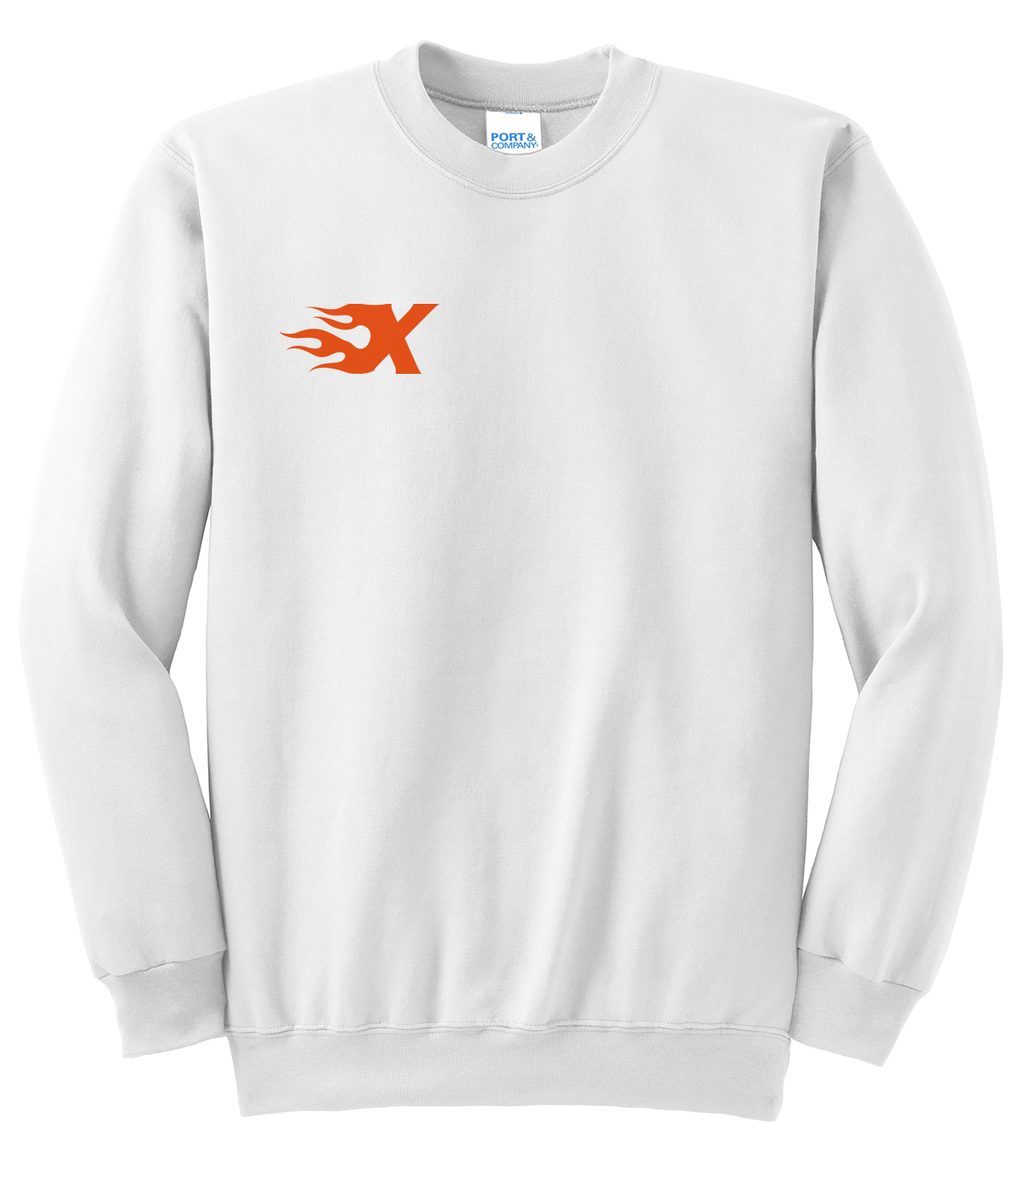 Xtreme Lacrosse White Crew Neck Sweater